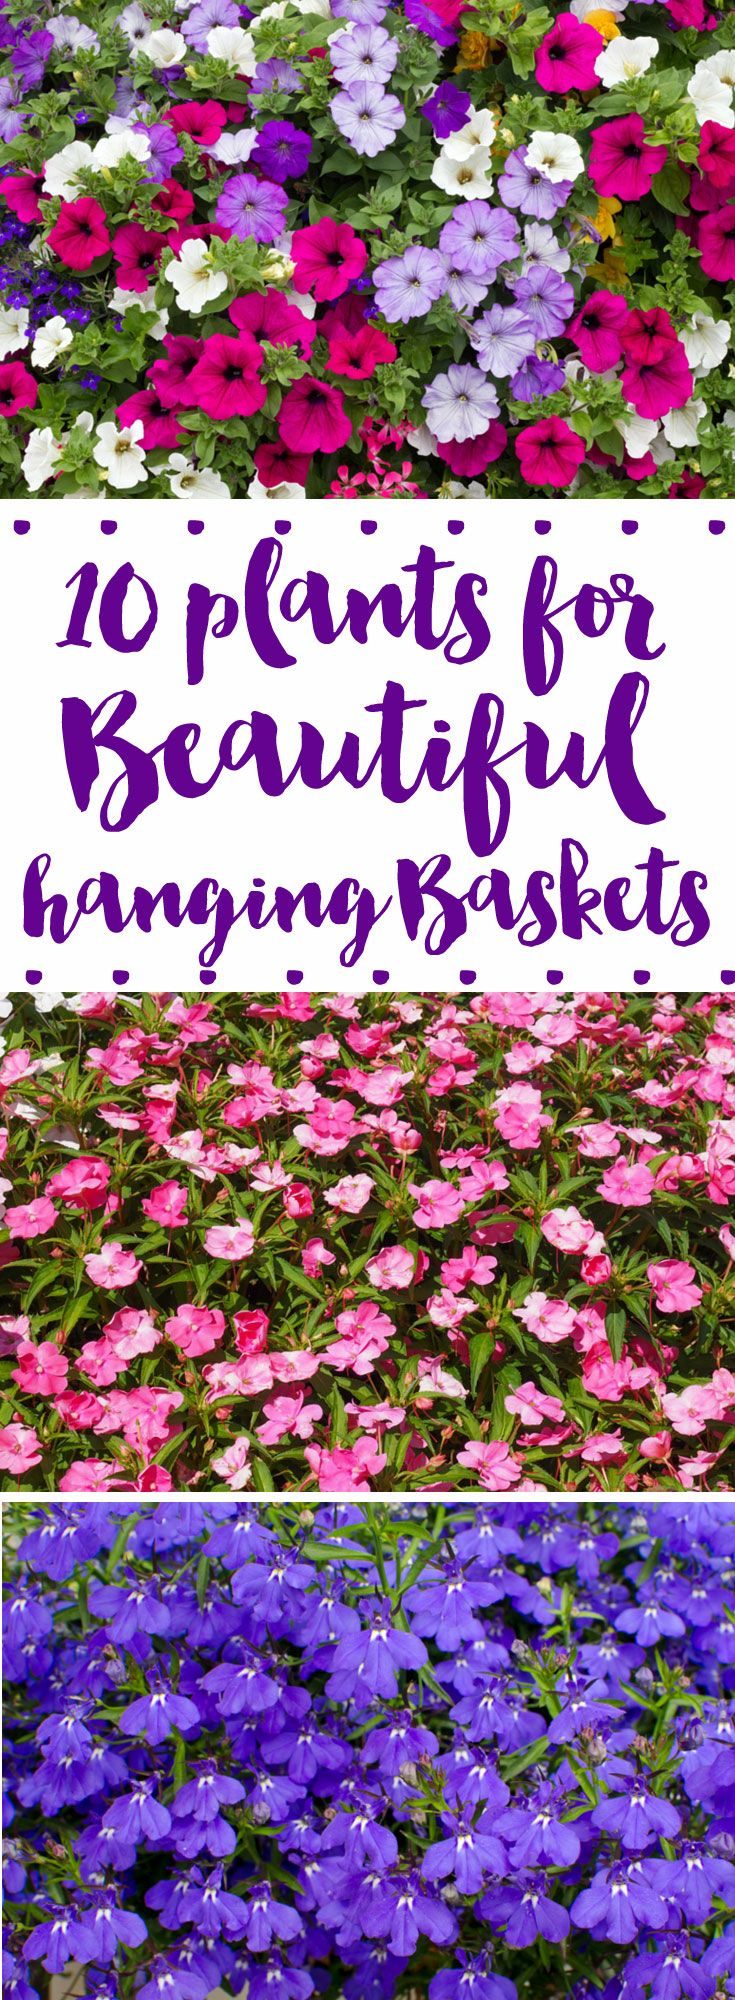 10 Flowers for Beautiful Hanging Baskets | Porch, Plants and Easy